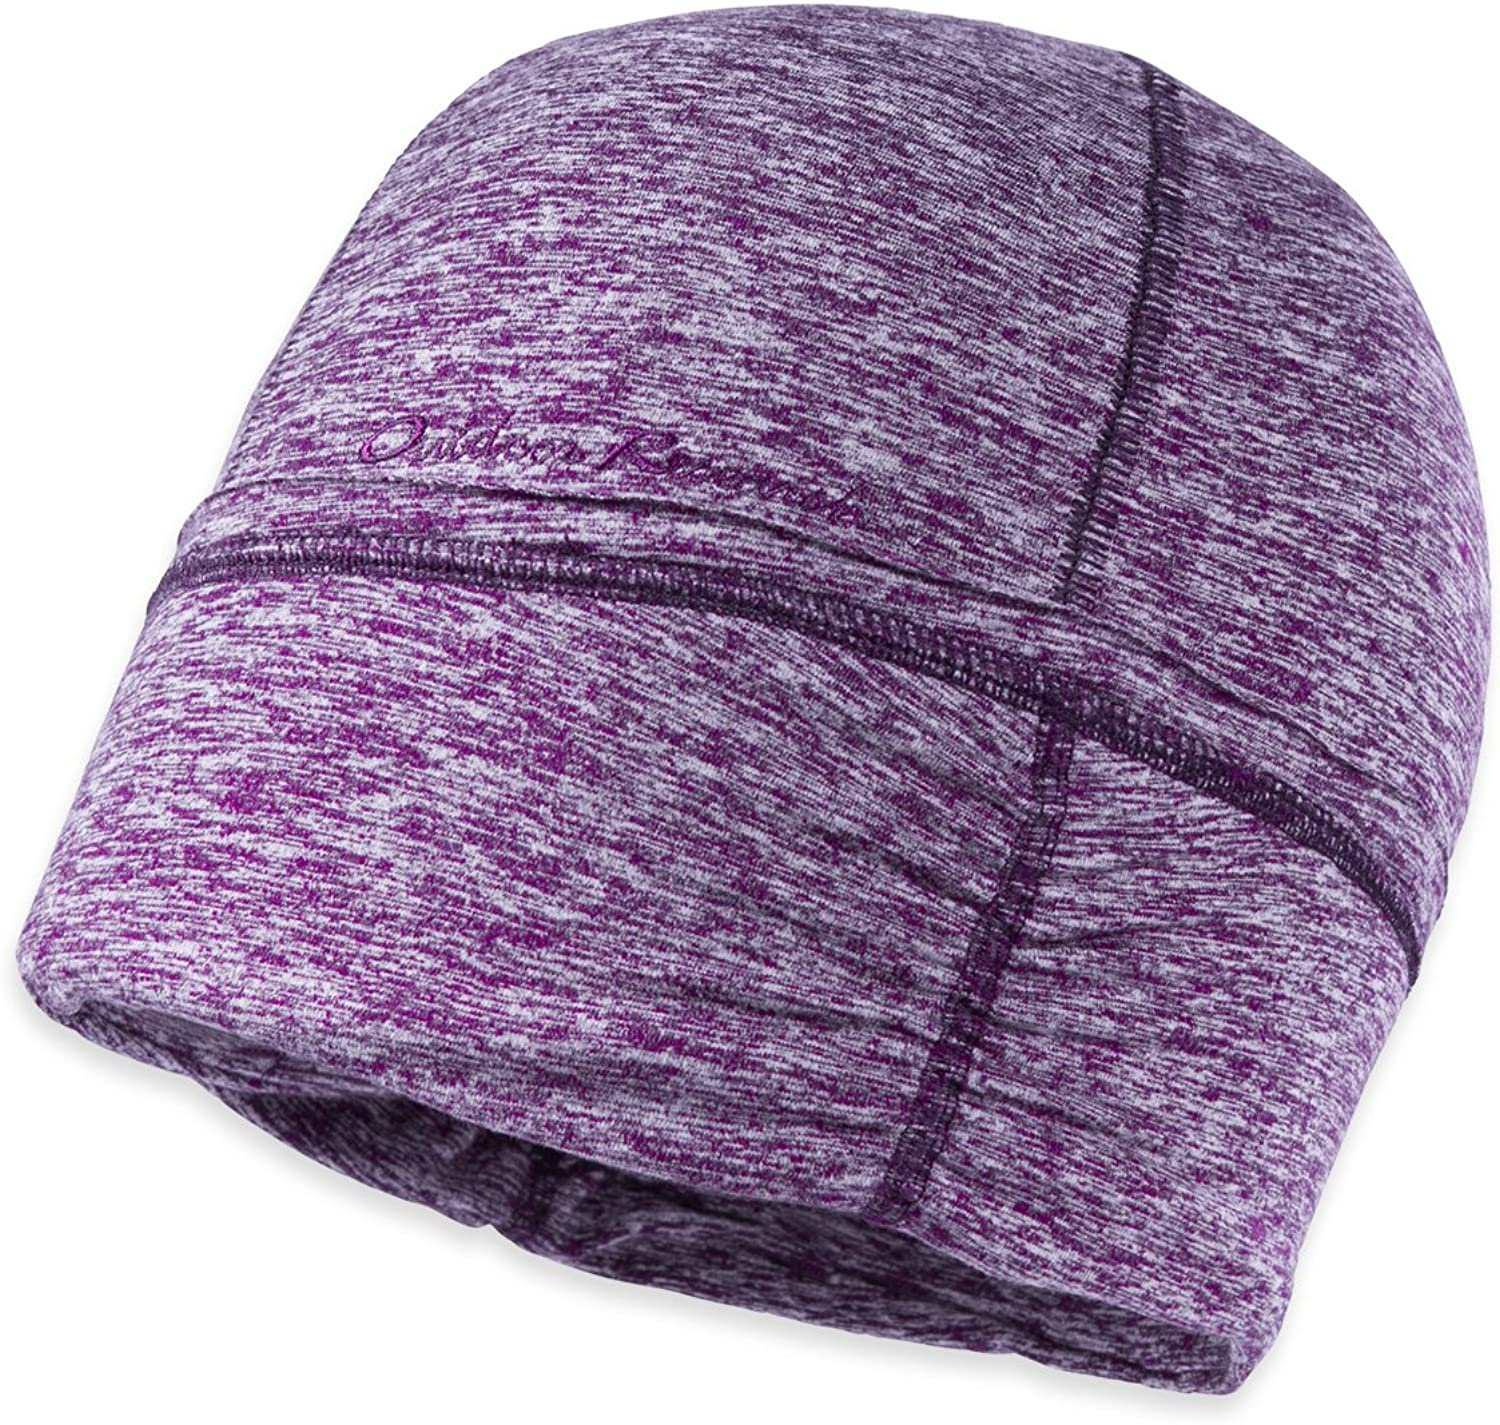 Outdoor Research Girls Melody Beanie Bombing free store shipping